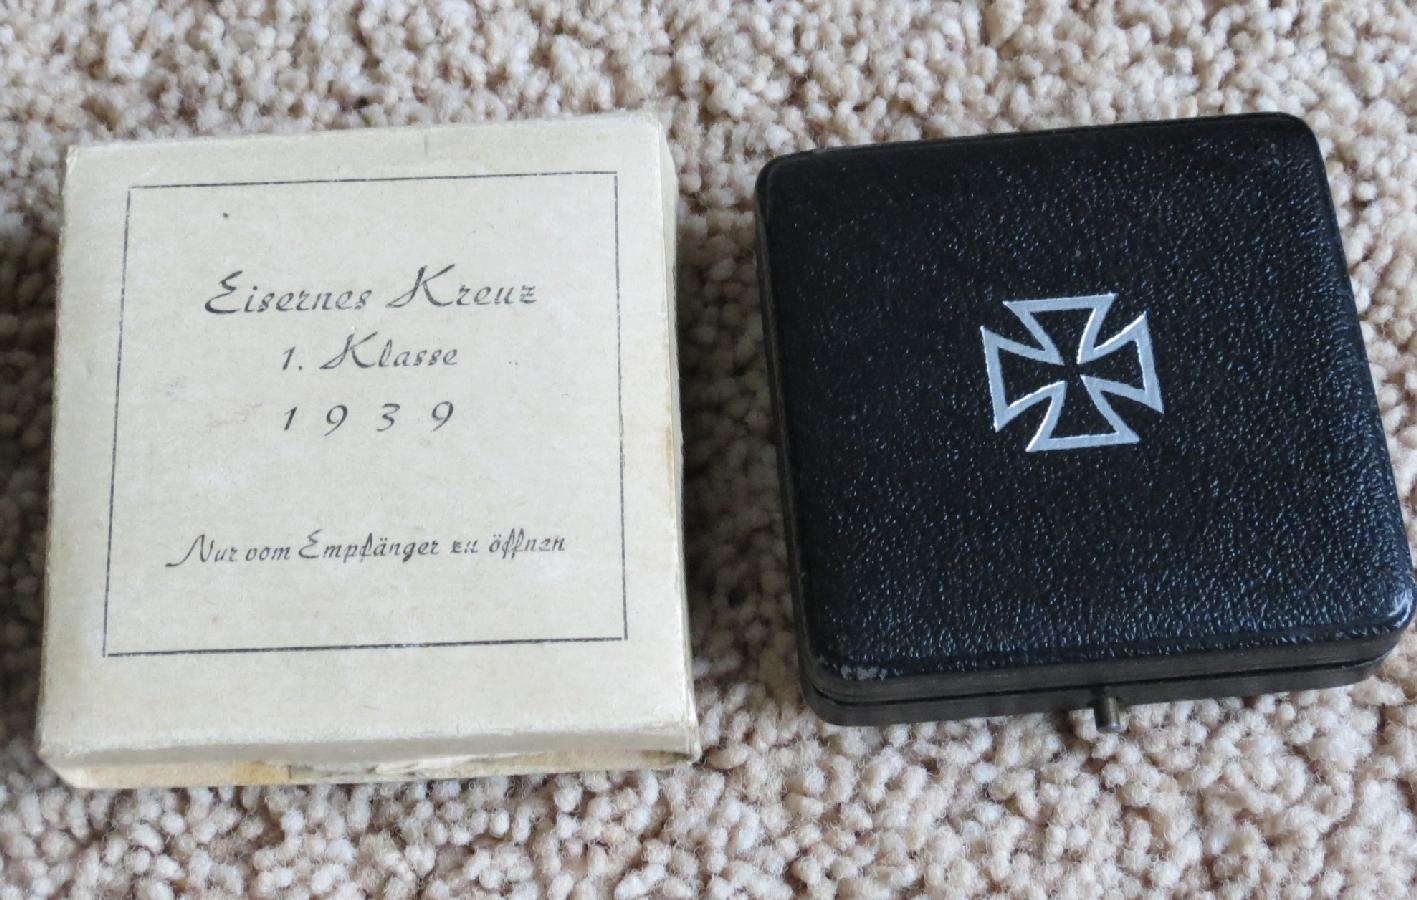 A Cased Iron Cross 1st Class with a Card Case Outer at WWW.Thirdreichmedals.com